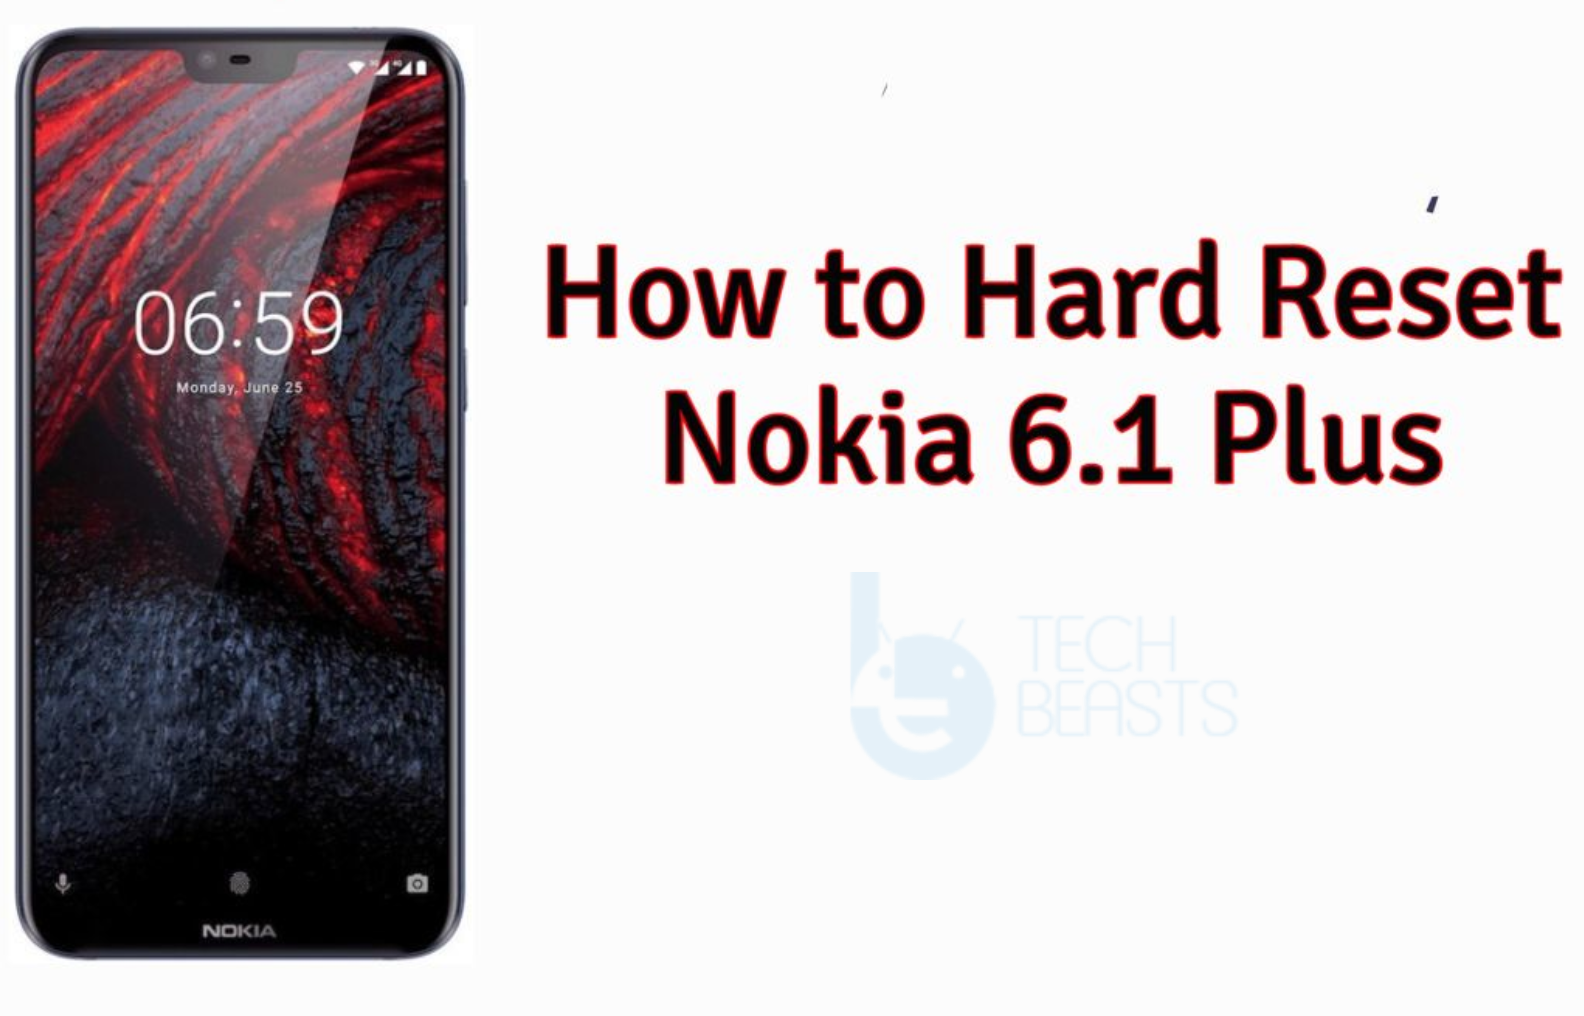 Hard Reset Nokia 6.1 Plus